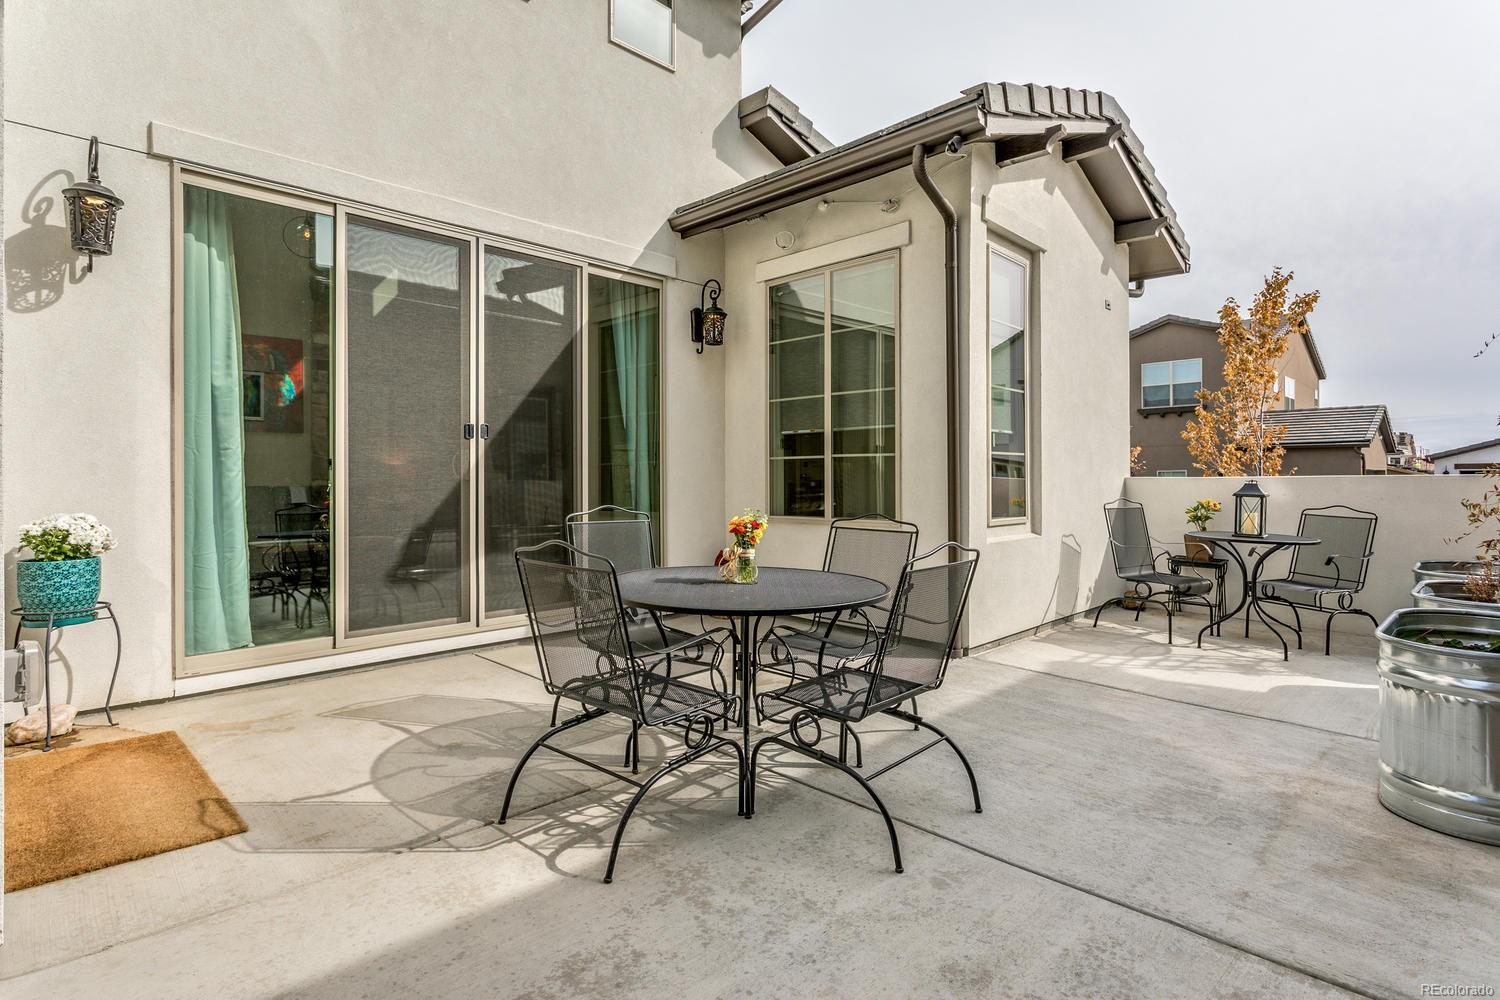 Expanded Patio and Upgraded Privacy Wall